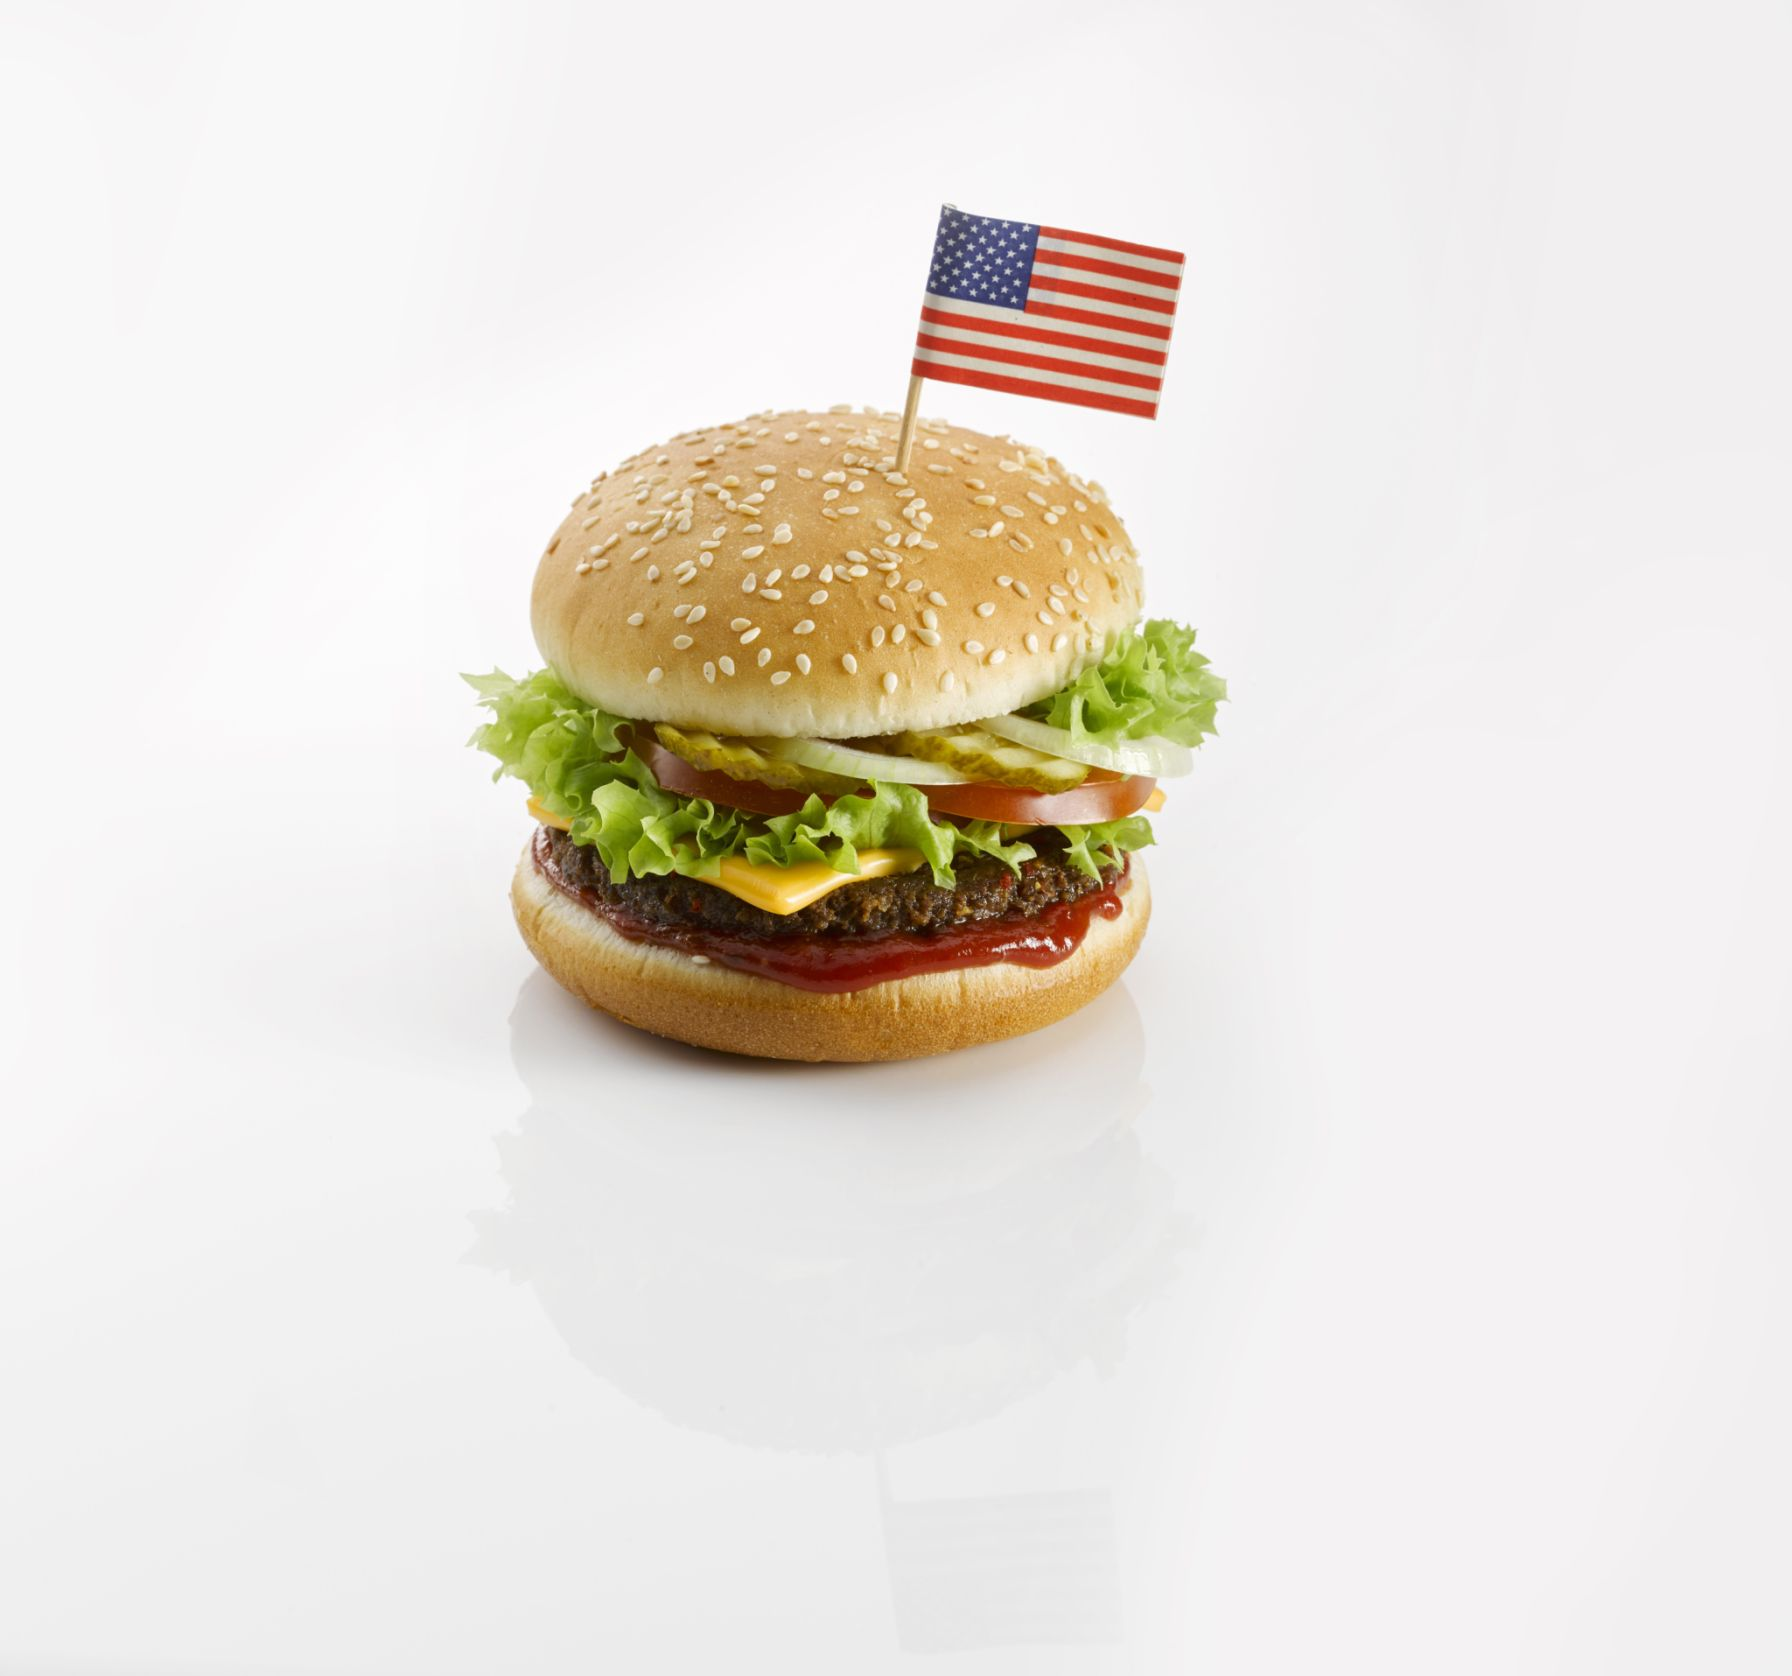 Where To Get Free Food On Veteran\'s Day - Deals for Veteran\'s Day